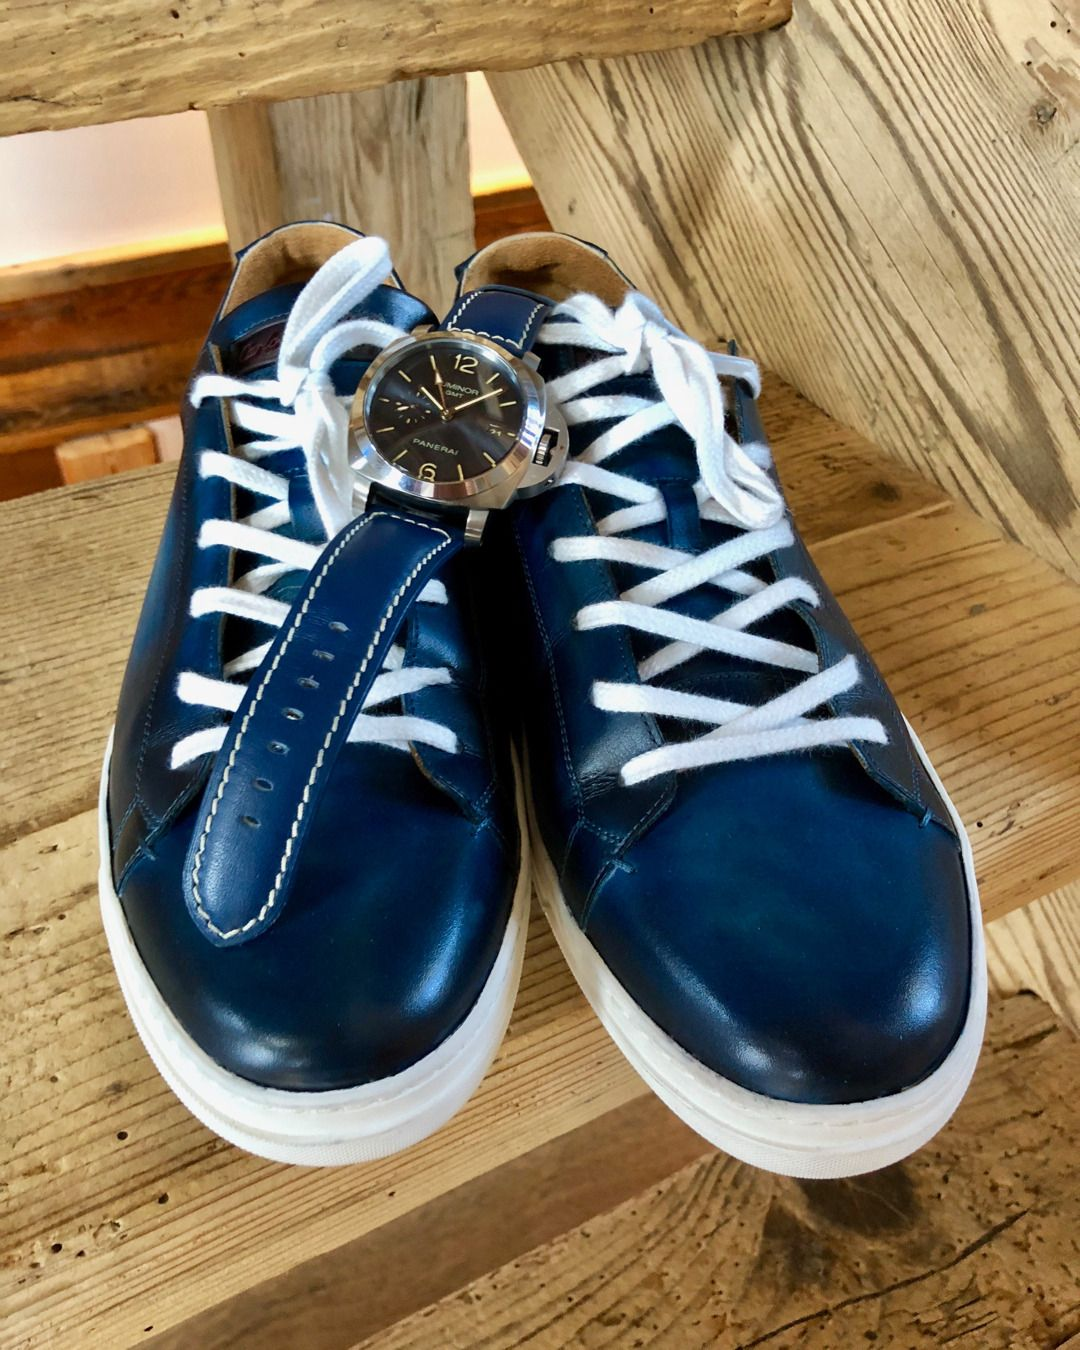 5080be0e0a6 Carlos Santos sneakers with a stunning deep blue patina by  chez monsieur  paired with a Panerai PAM688 and matching strap!  qdrion  patina  patine   souliers ...